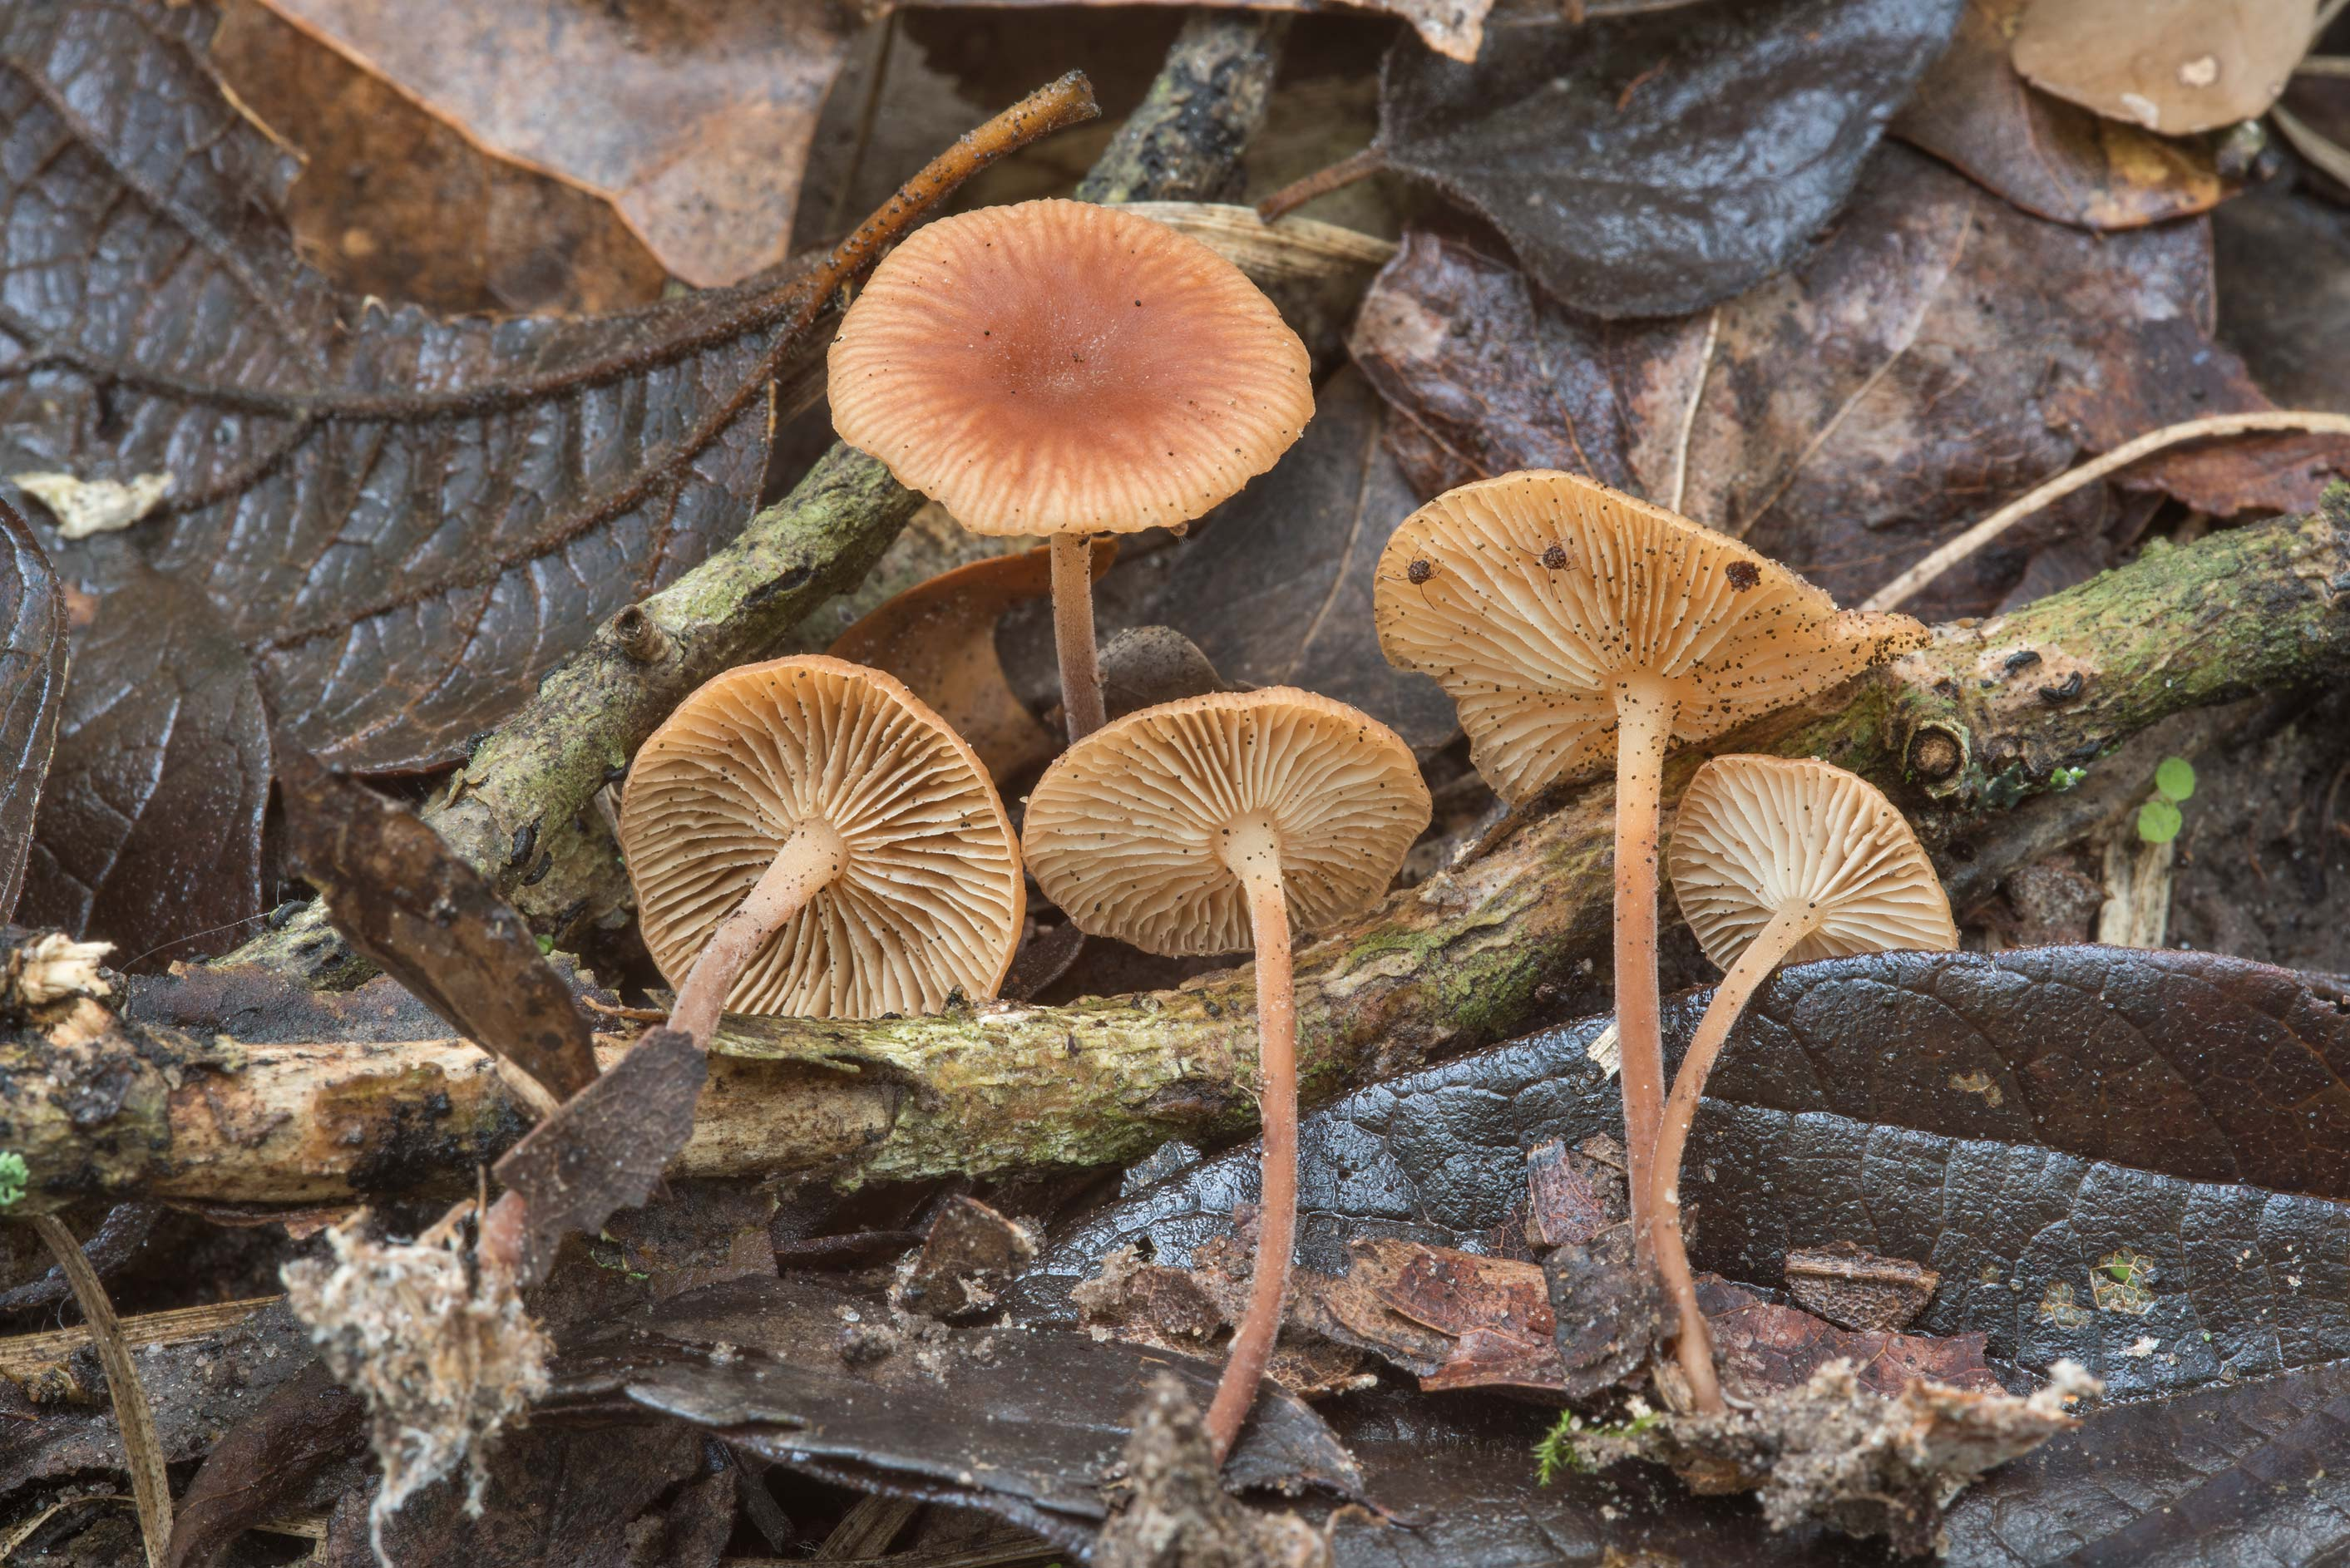 Gymnopus spongiosus mushrooms on Kiwanis Nature Trail. College Station, Texas